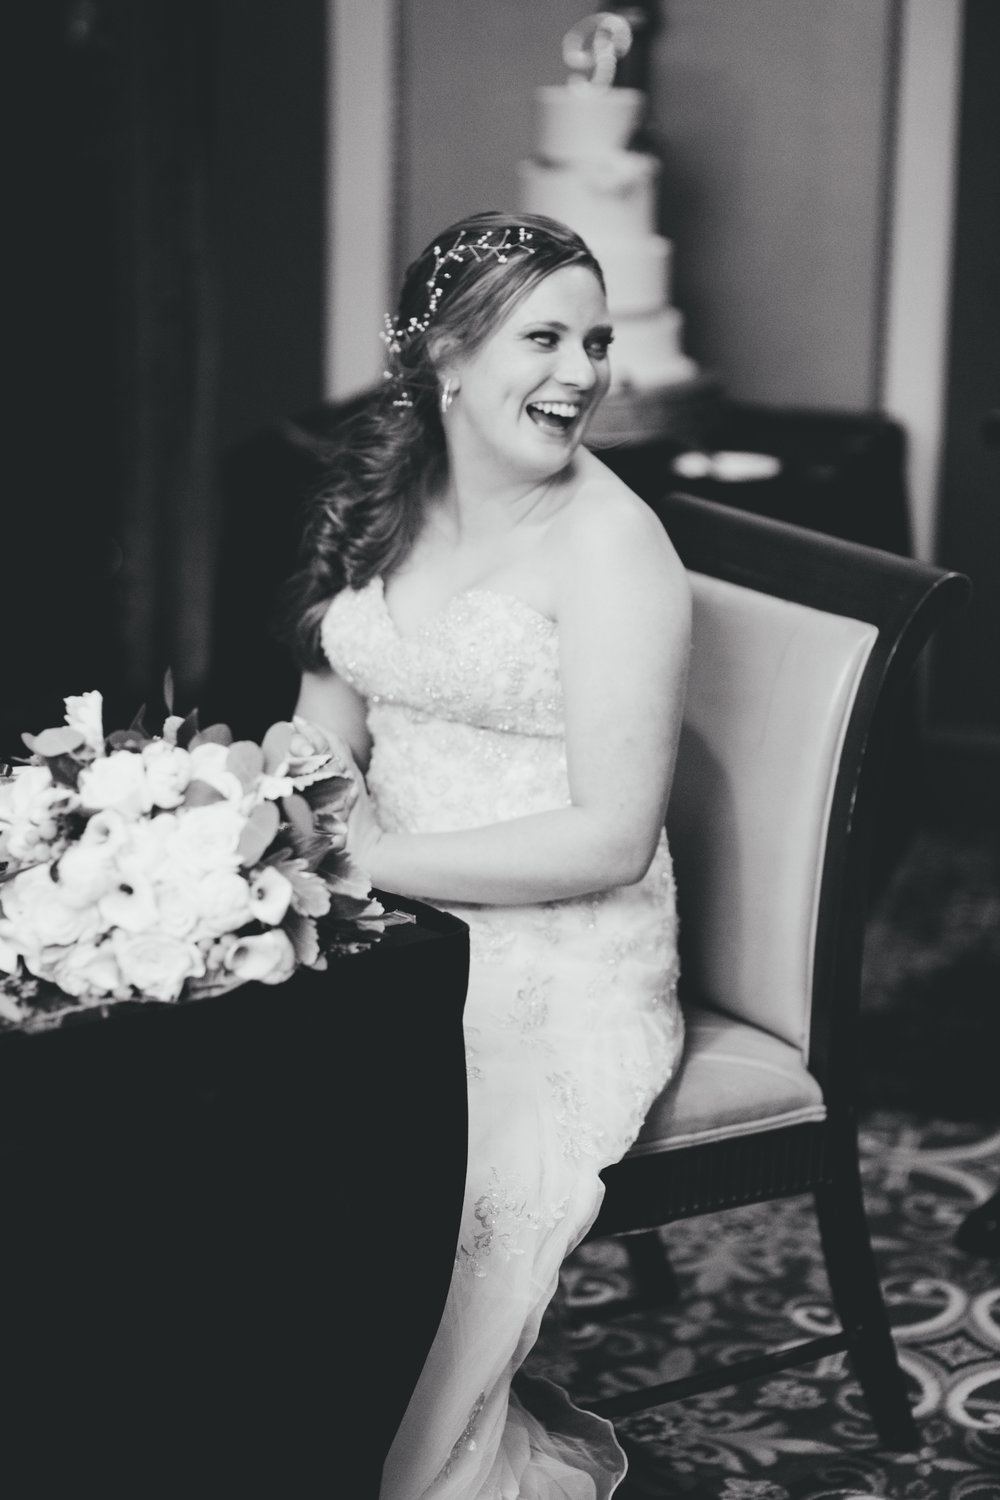 Matthew & Megan - Reception - Jake & Katie Photography_123.jpg